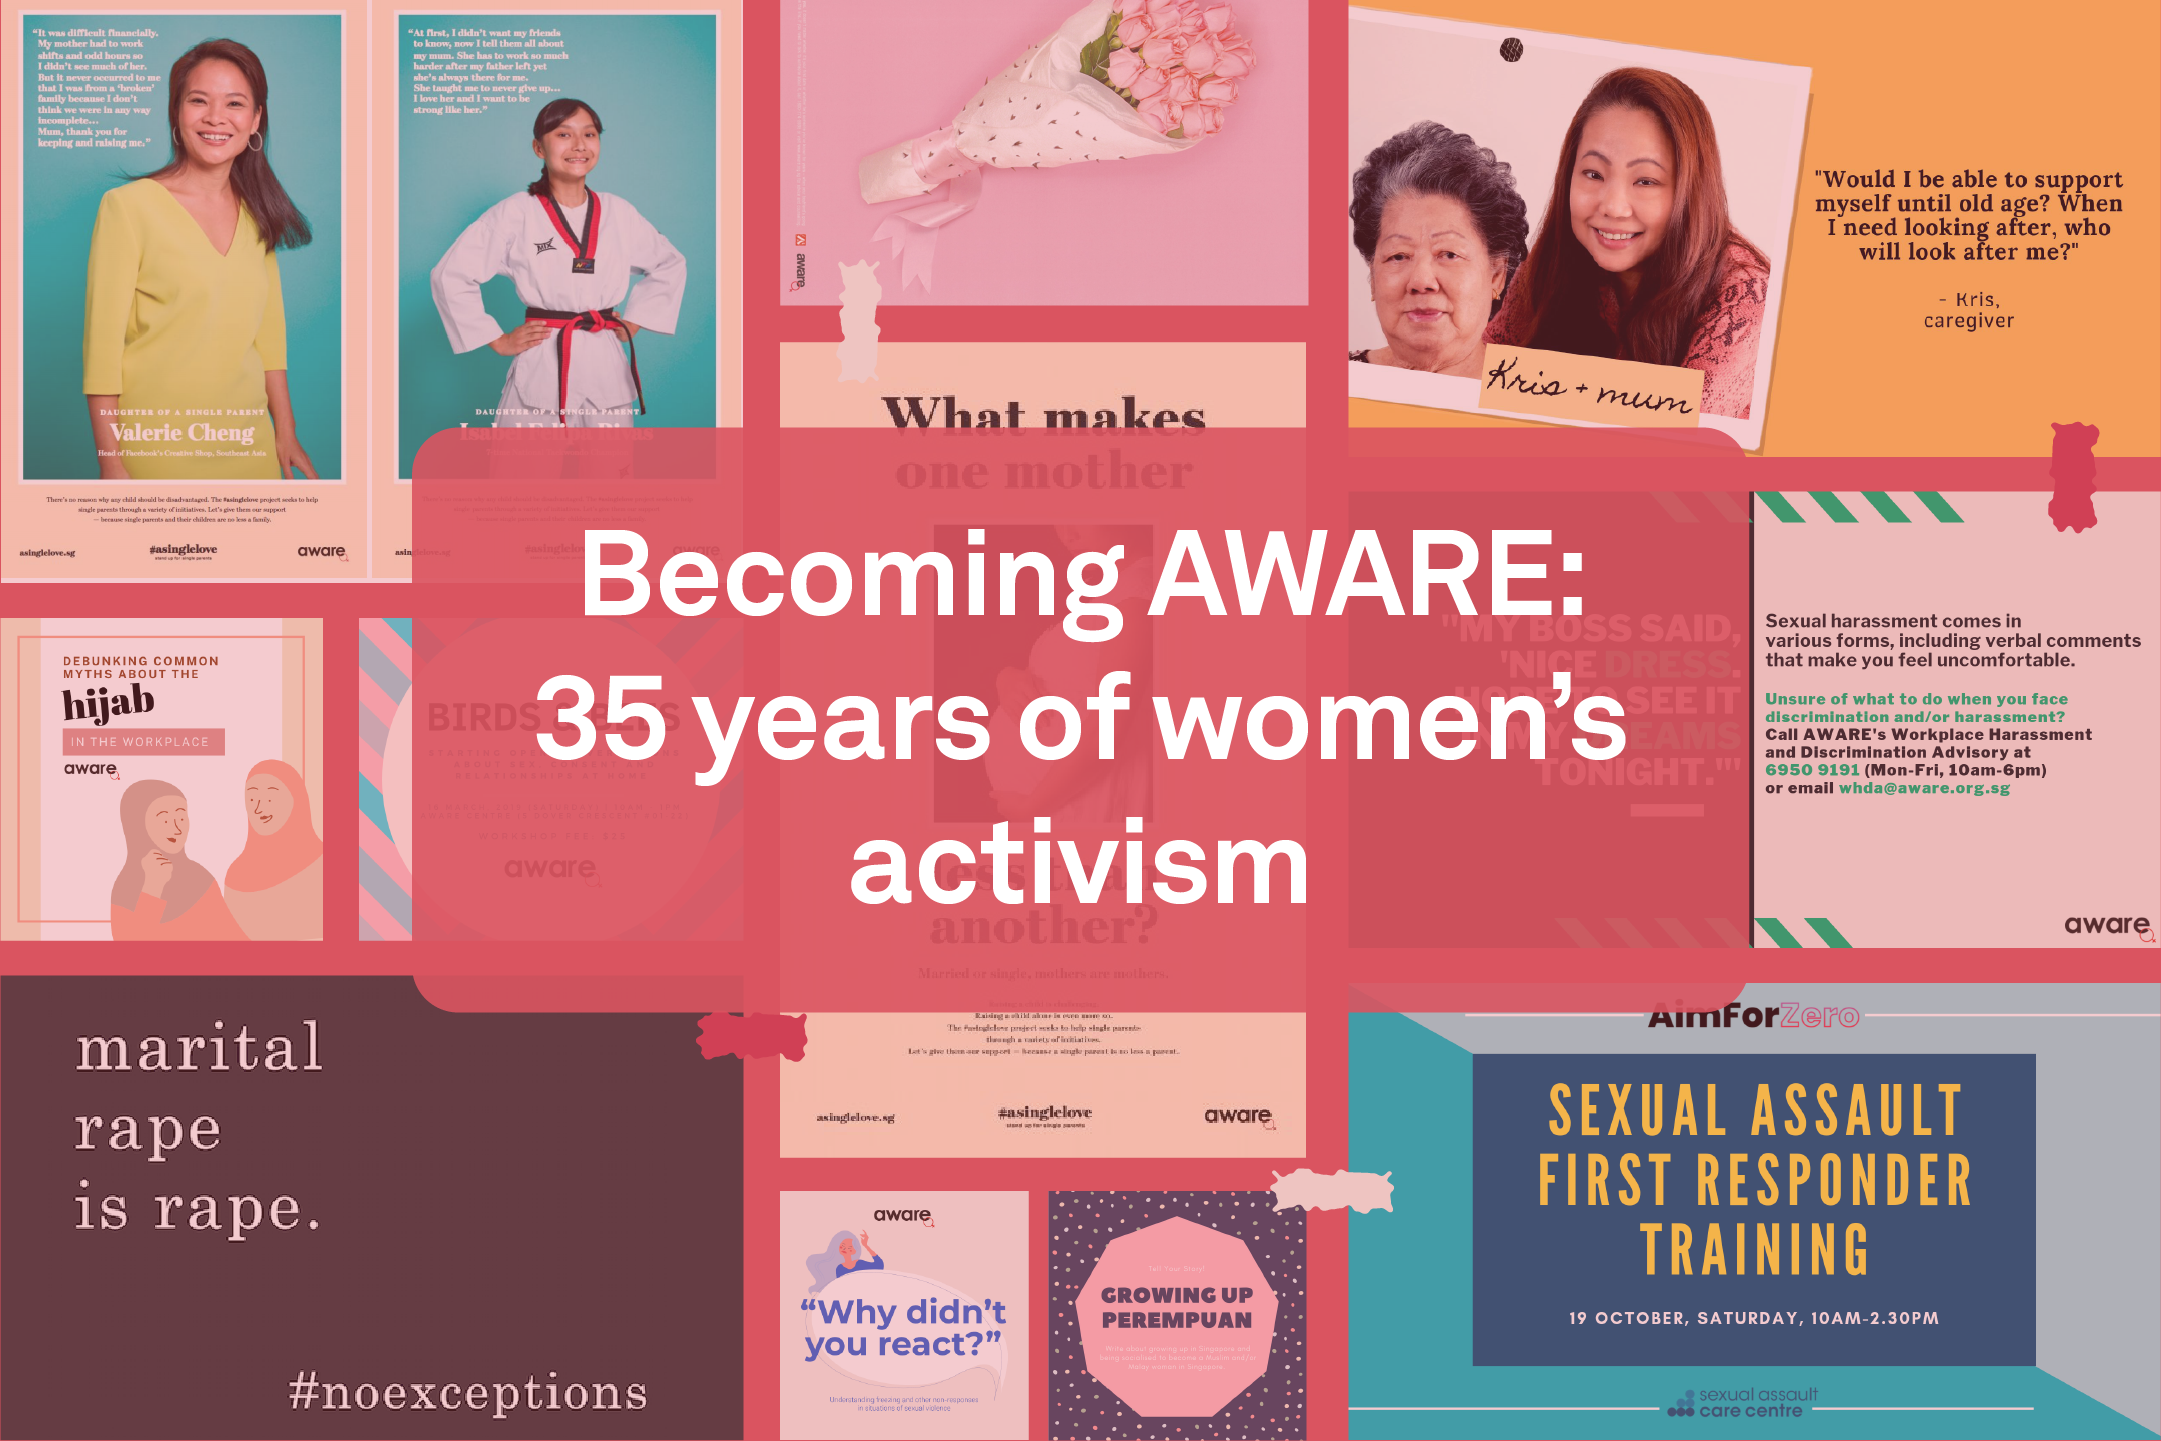 Becoming AWARE: 35 years of women's activism